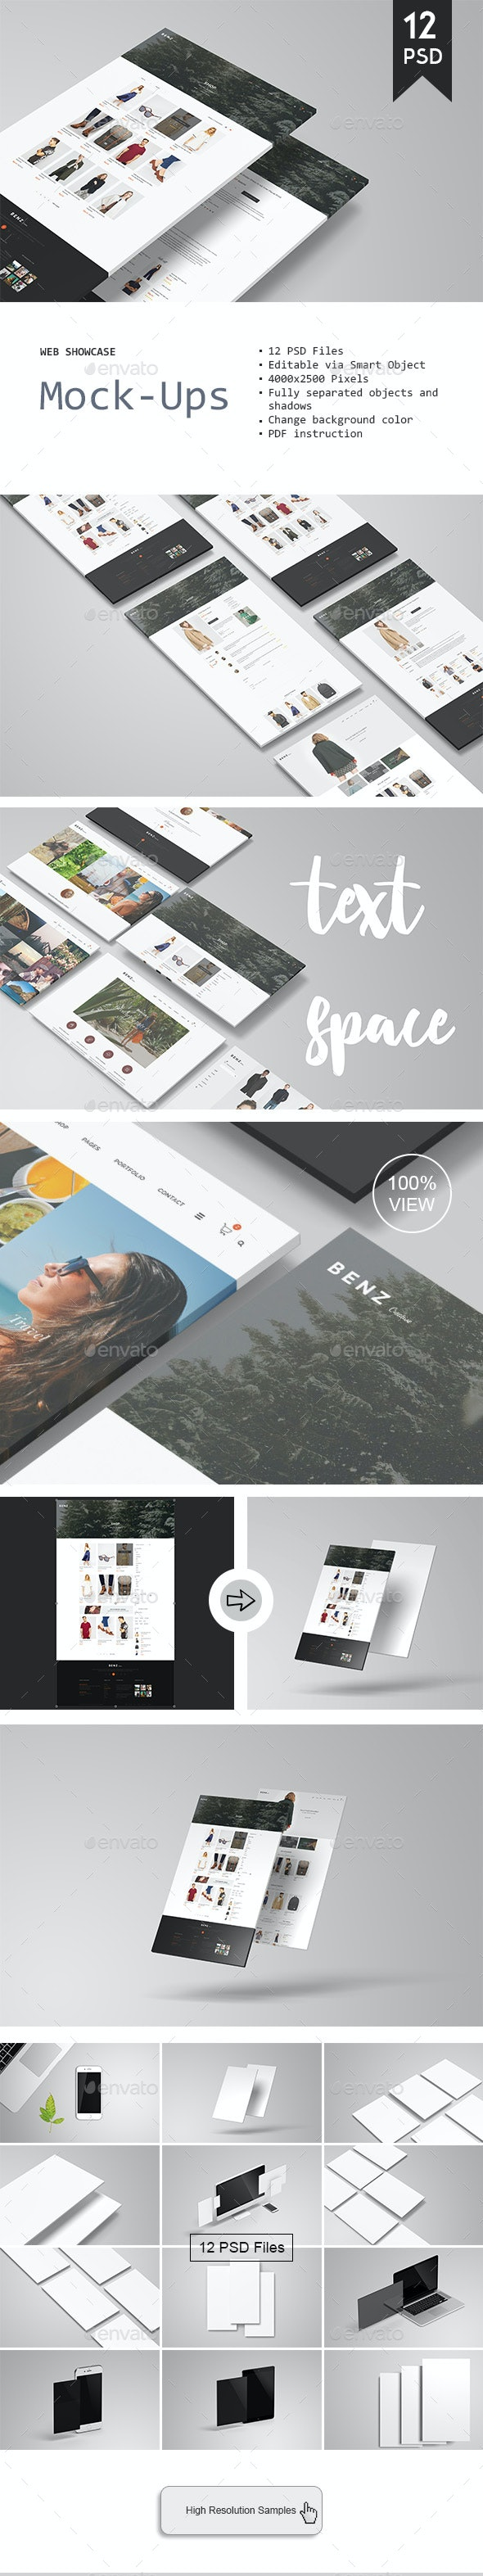 Web Showcase Mockup - Displays Product Mock-Ups